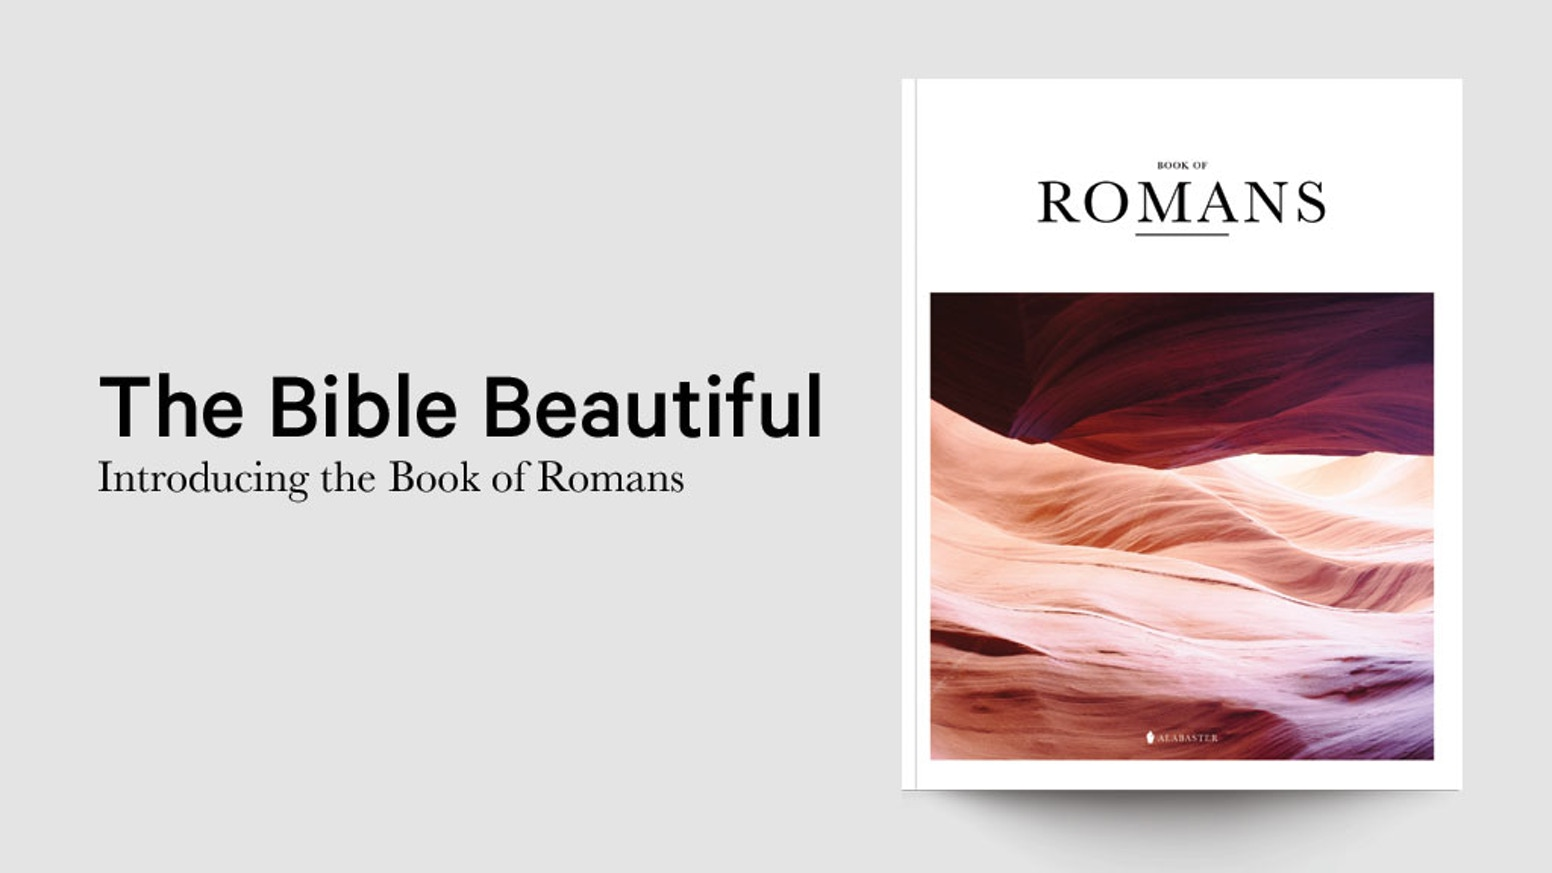 A history-shaping text from the Bible, paired with visual imagery and thoughtful design for a beautiful reading experience.